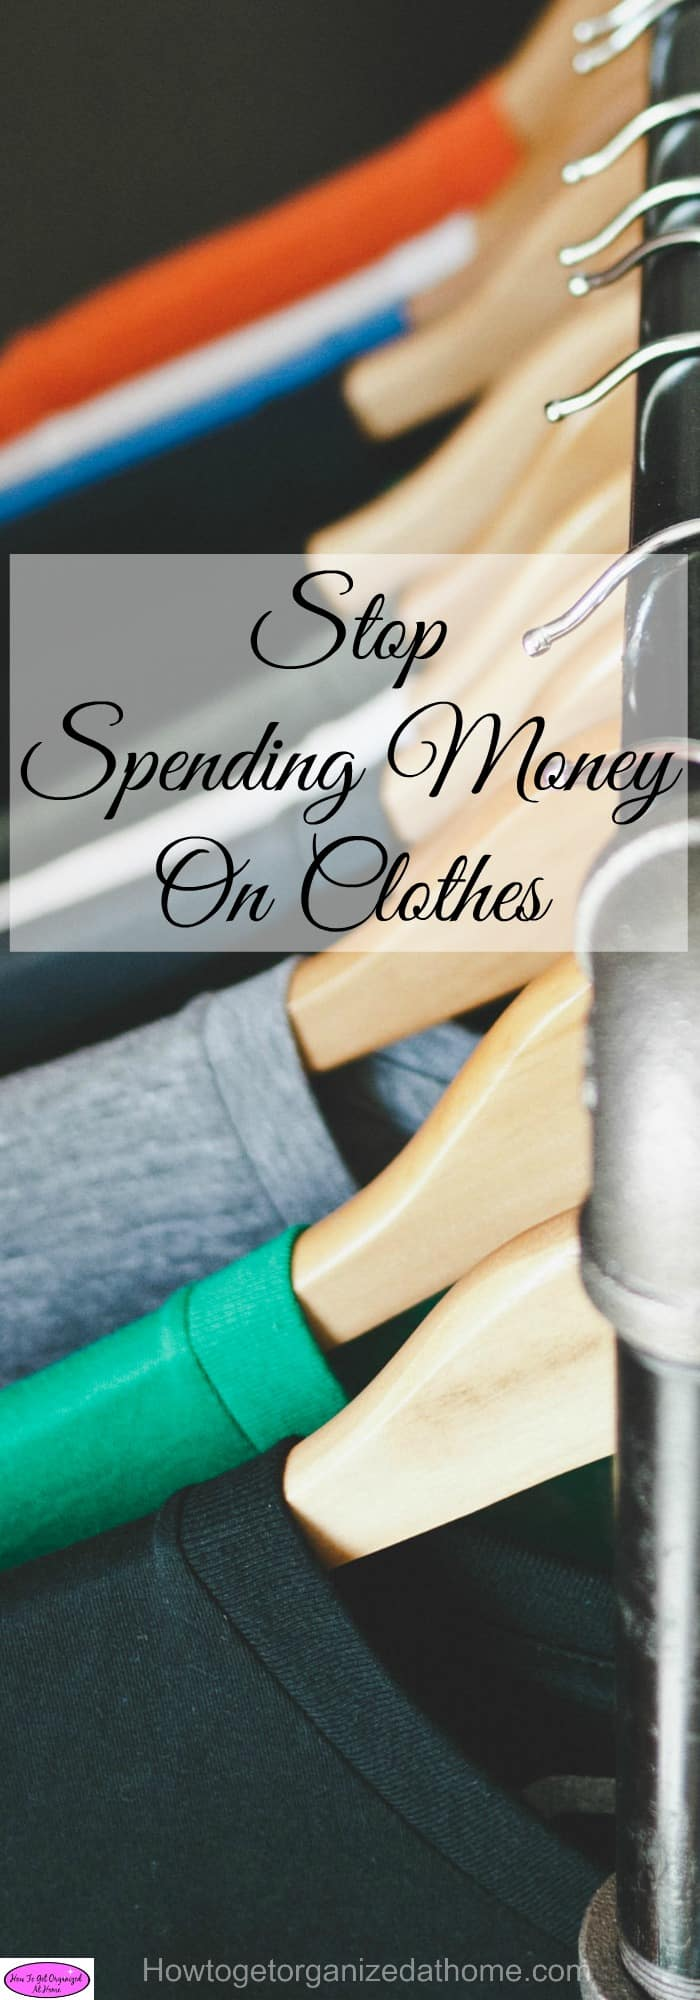 Stop spending money on clothes will help you think about the items you do have and how these can work without the need to buy more clothes.